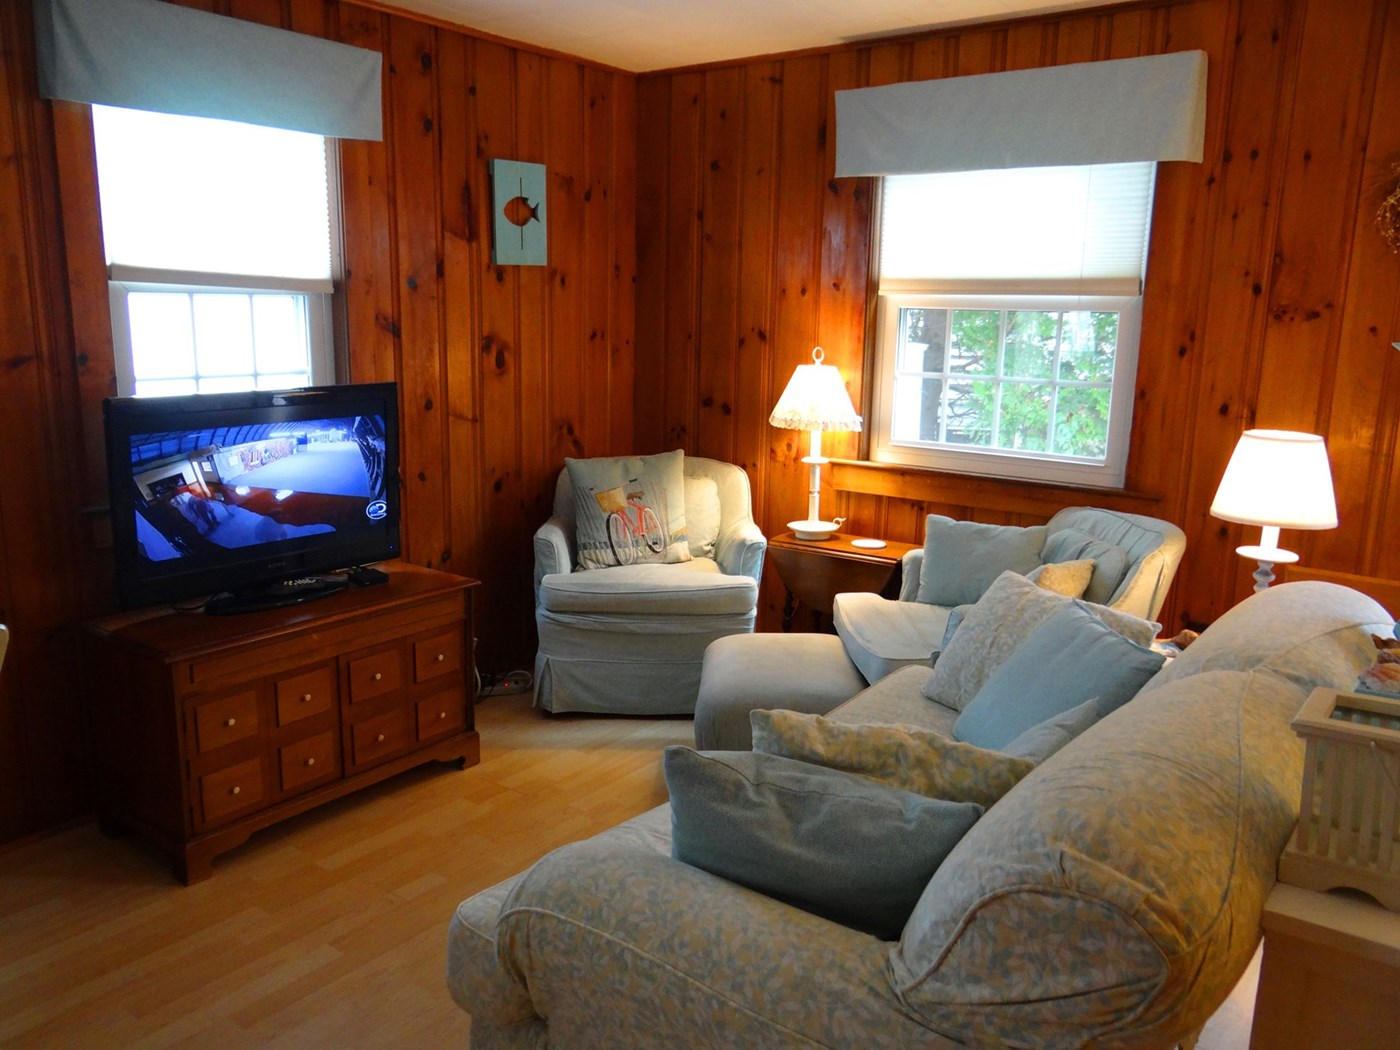 Dennis Vacation Rental home in Cape Cod MA 02639, .5 mile ...